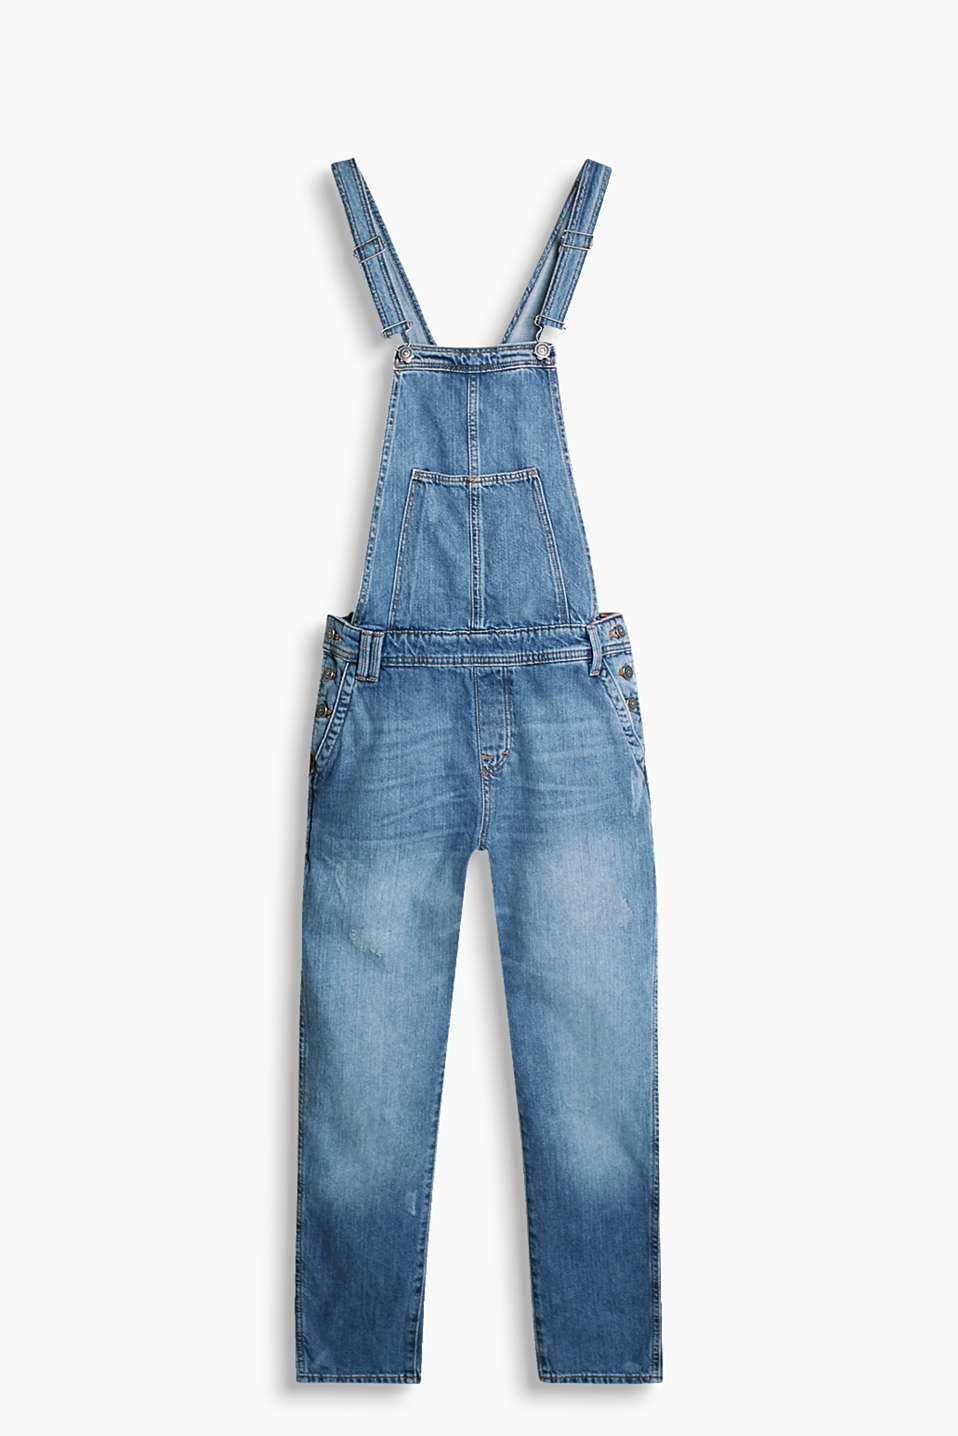 Distressed denim dungarees with fashionably cropped legs